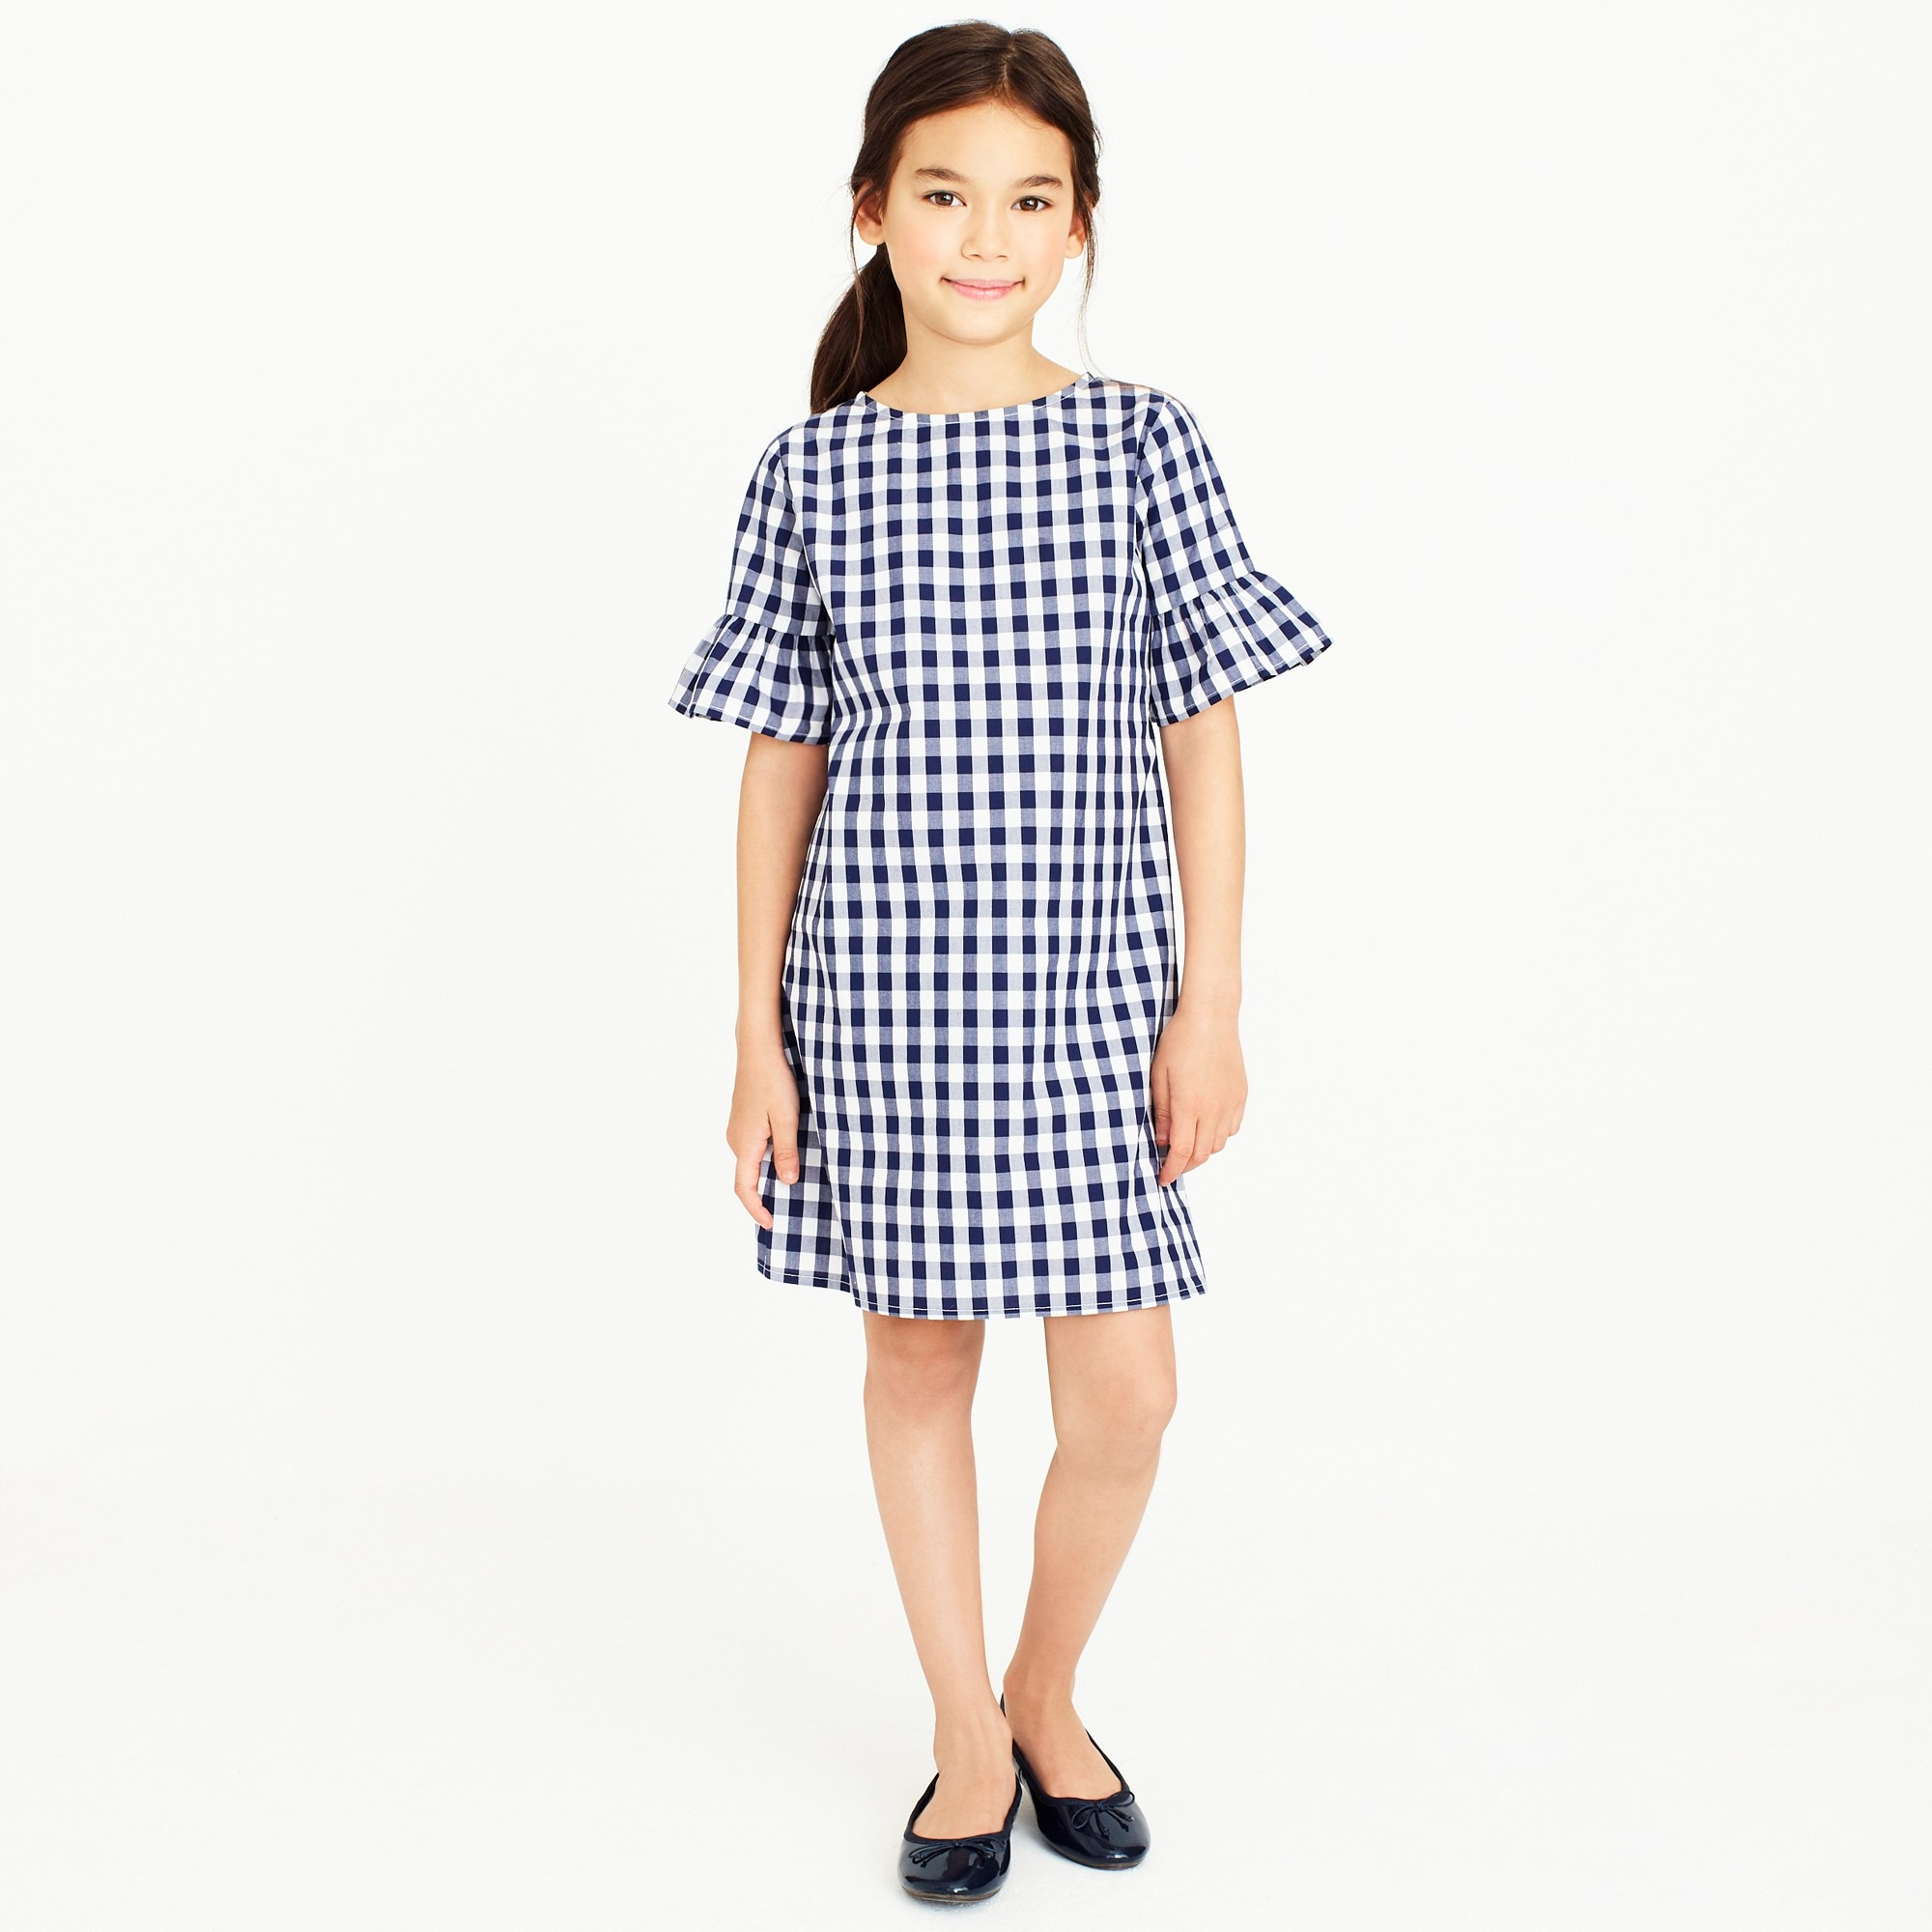 girls' flutter-sleeve dress in gingham : factorygirls dresses